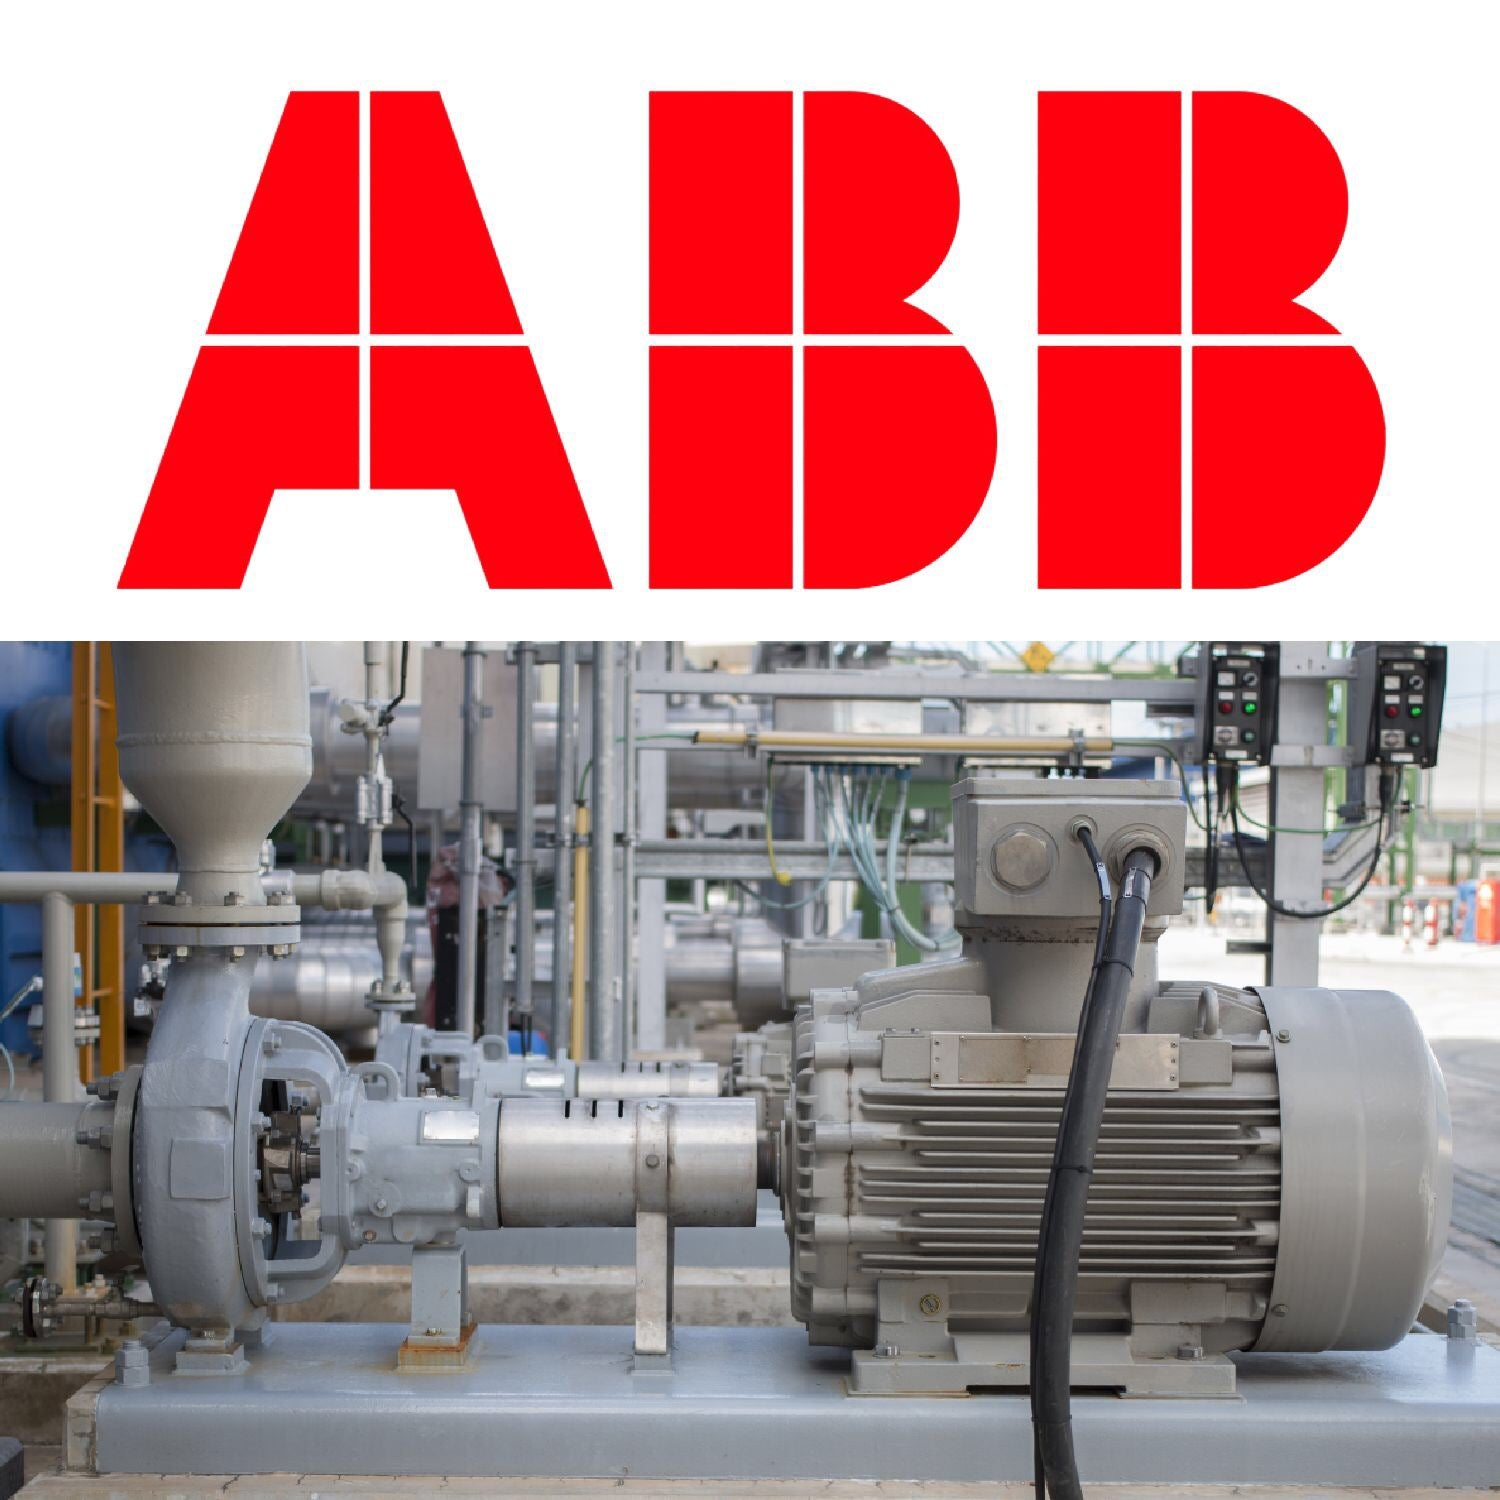 ABB logo With Drive And Motor